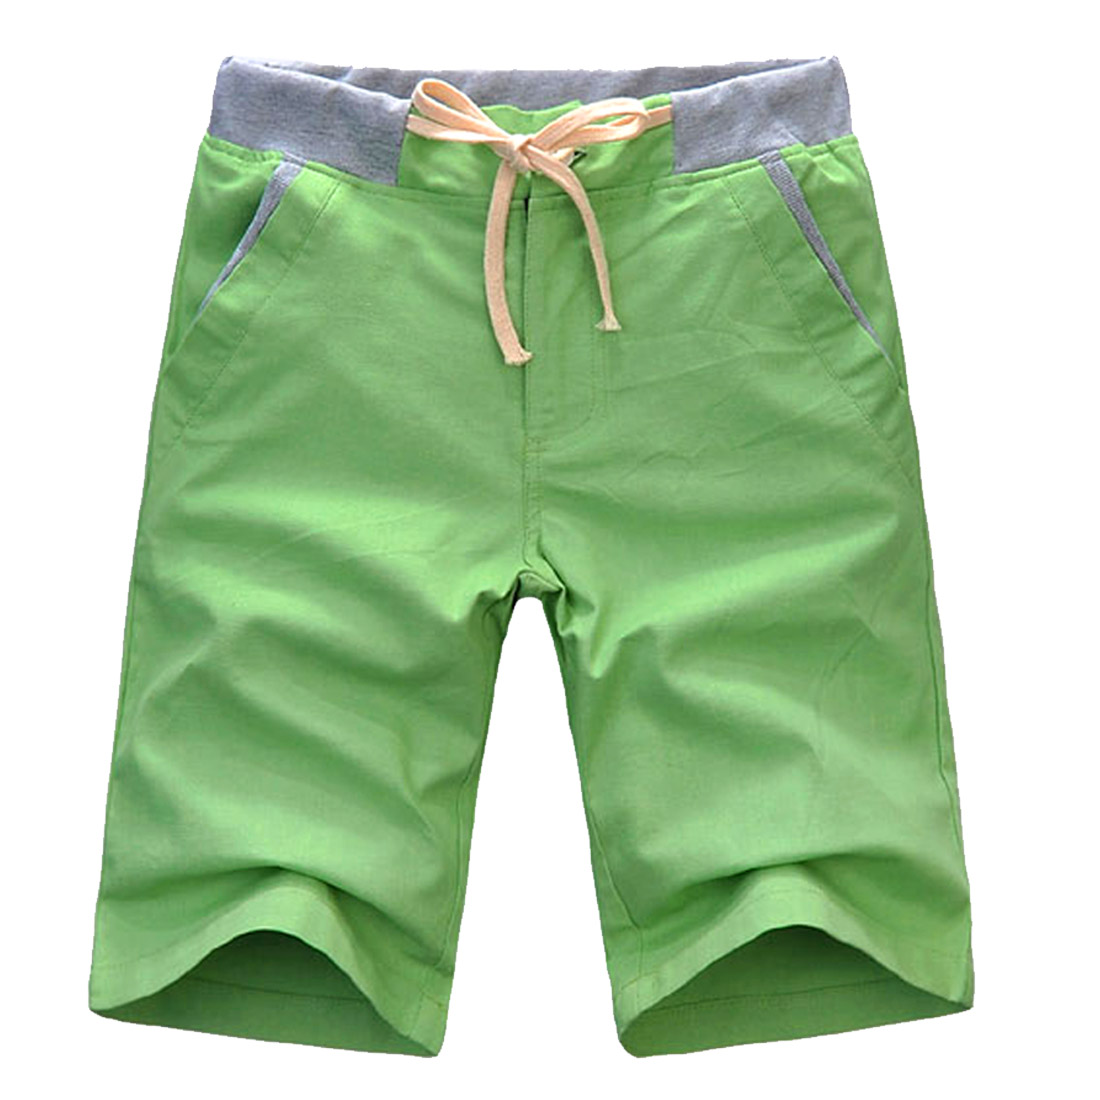 Man Hip Pockets Linen Leisure Buttoned Fashion Shorts Light Lime W31